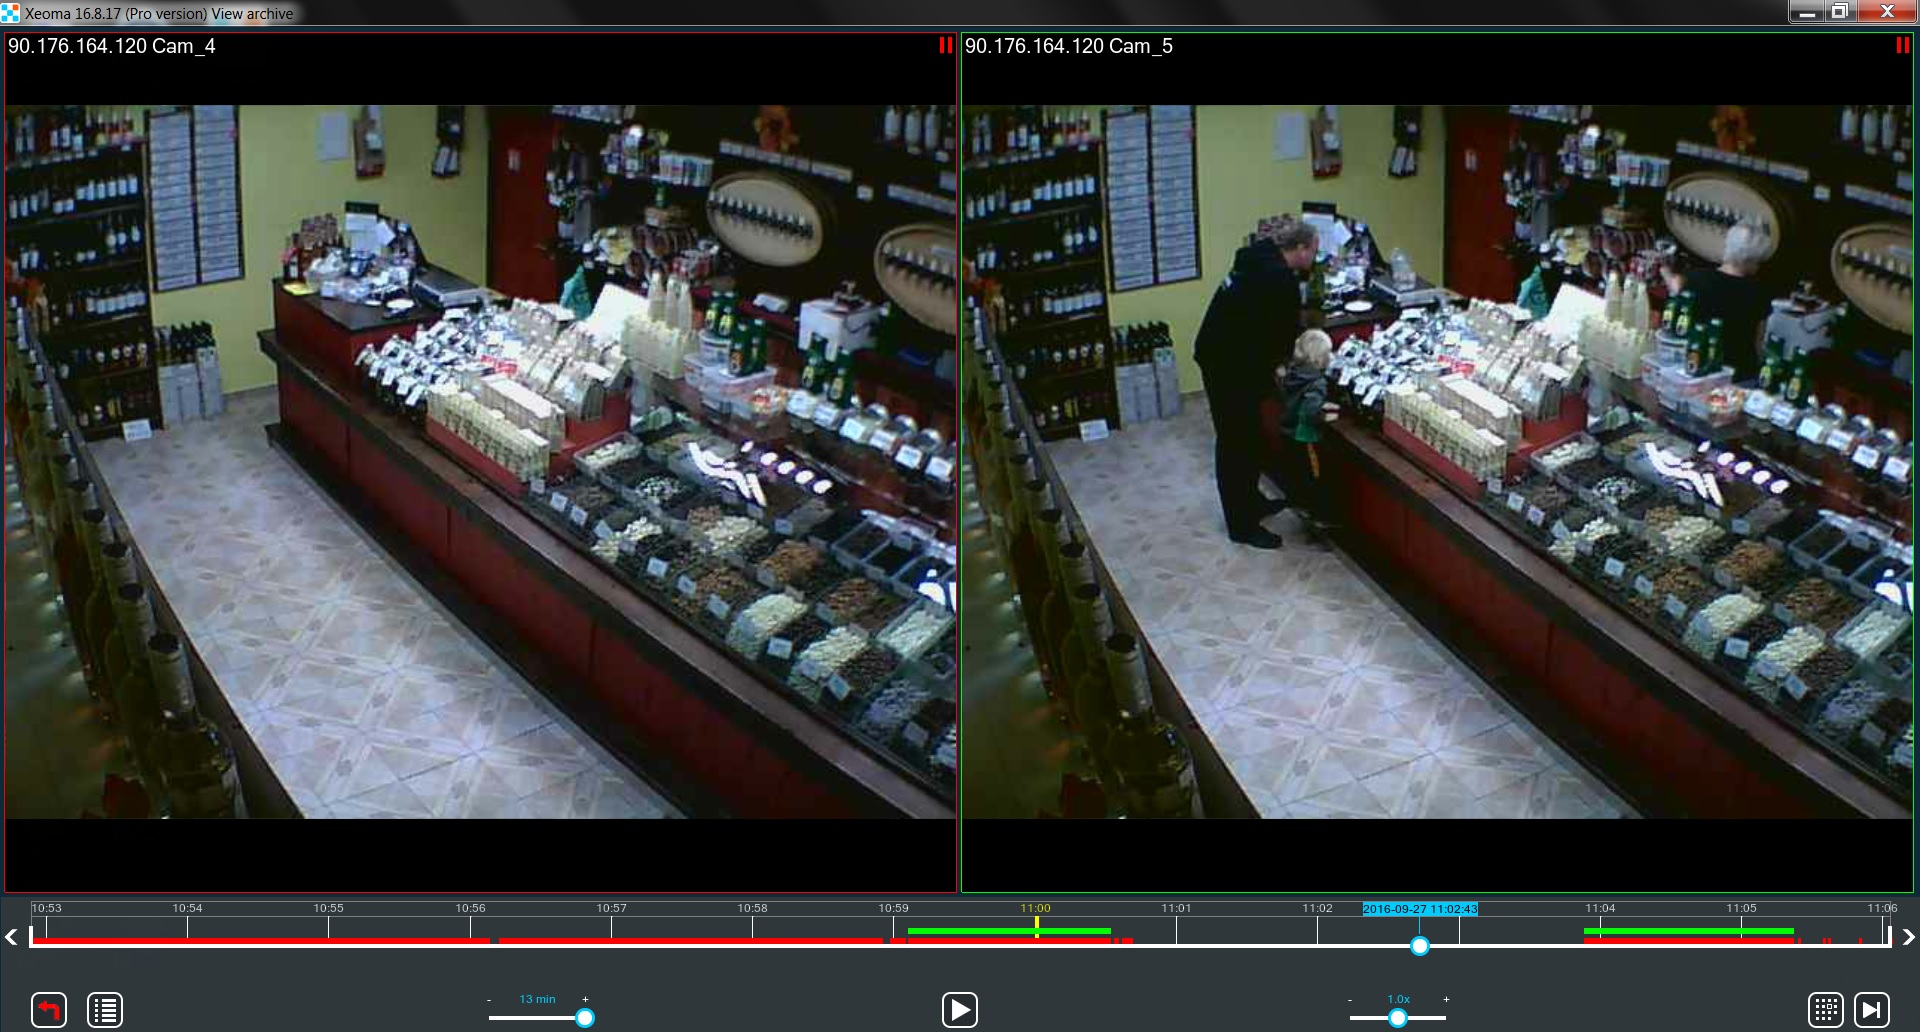 Working with the archive for house cameras